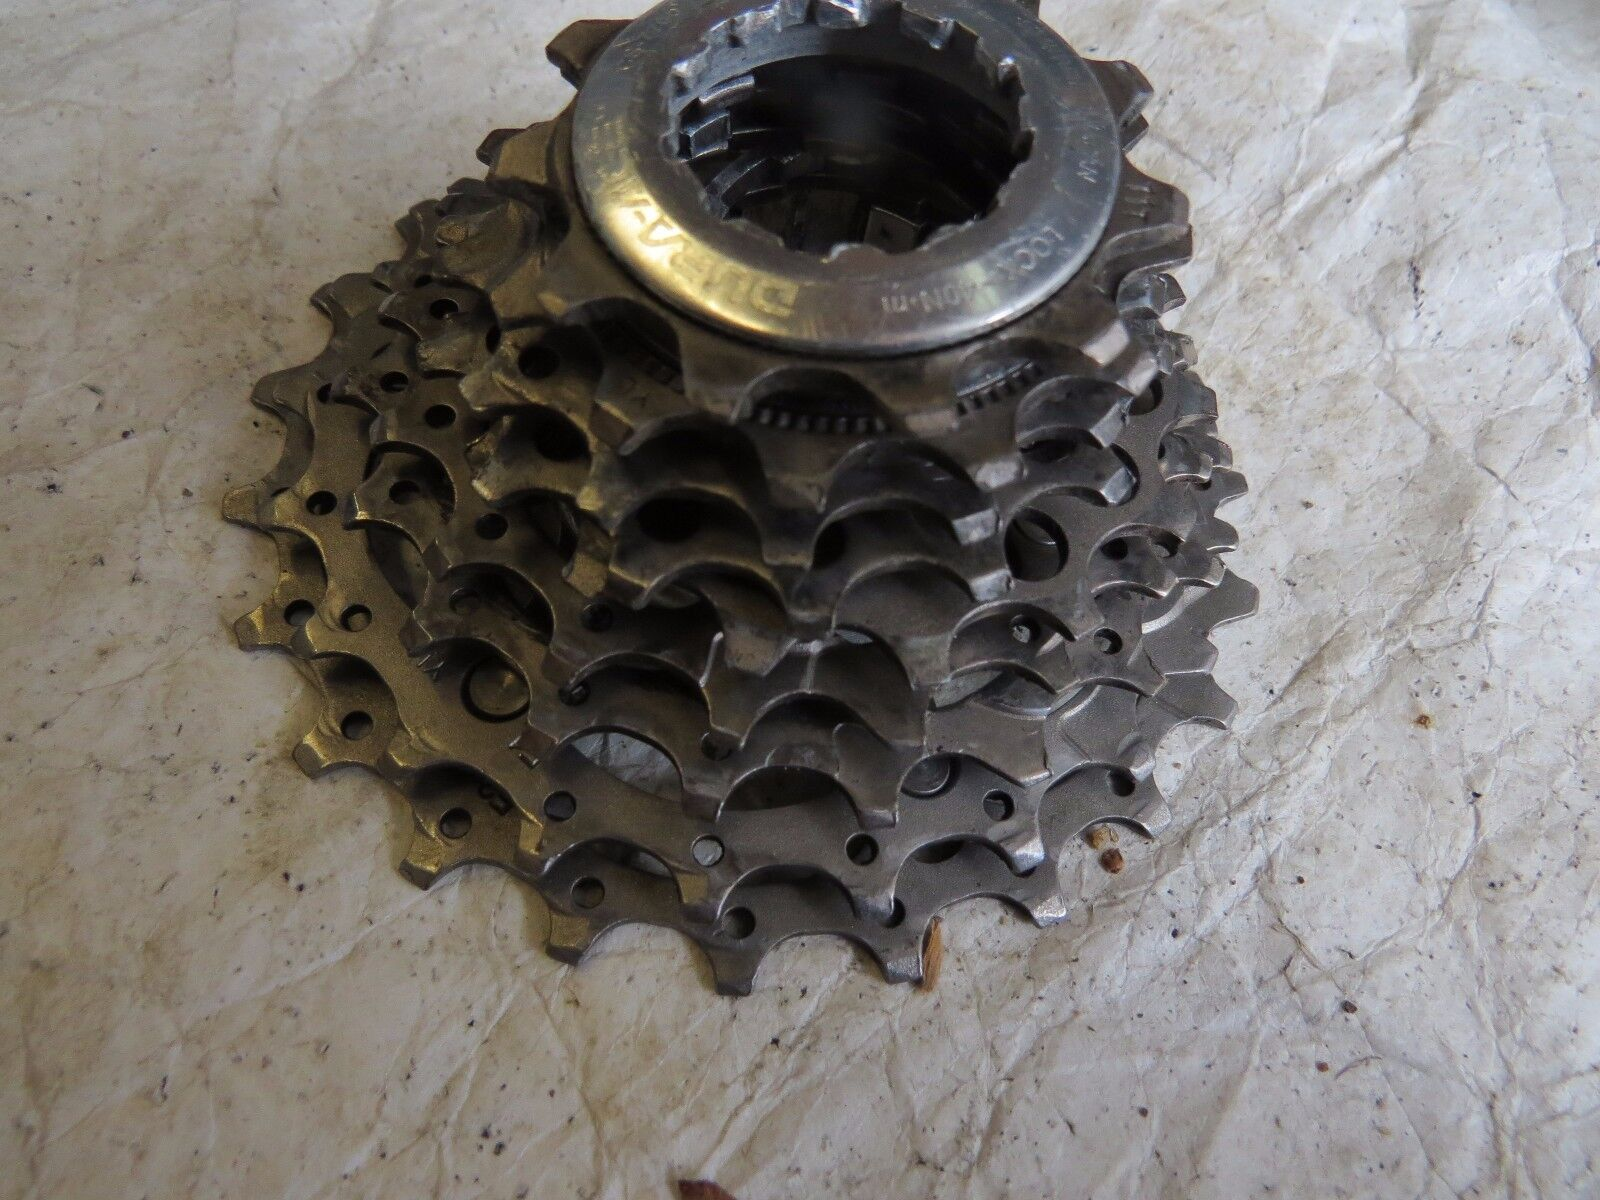 SHIMANO DURA-ACE 11-23 CASSETTE 9 SPEED ROAD COGS   online shopping and fashion store